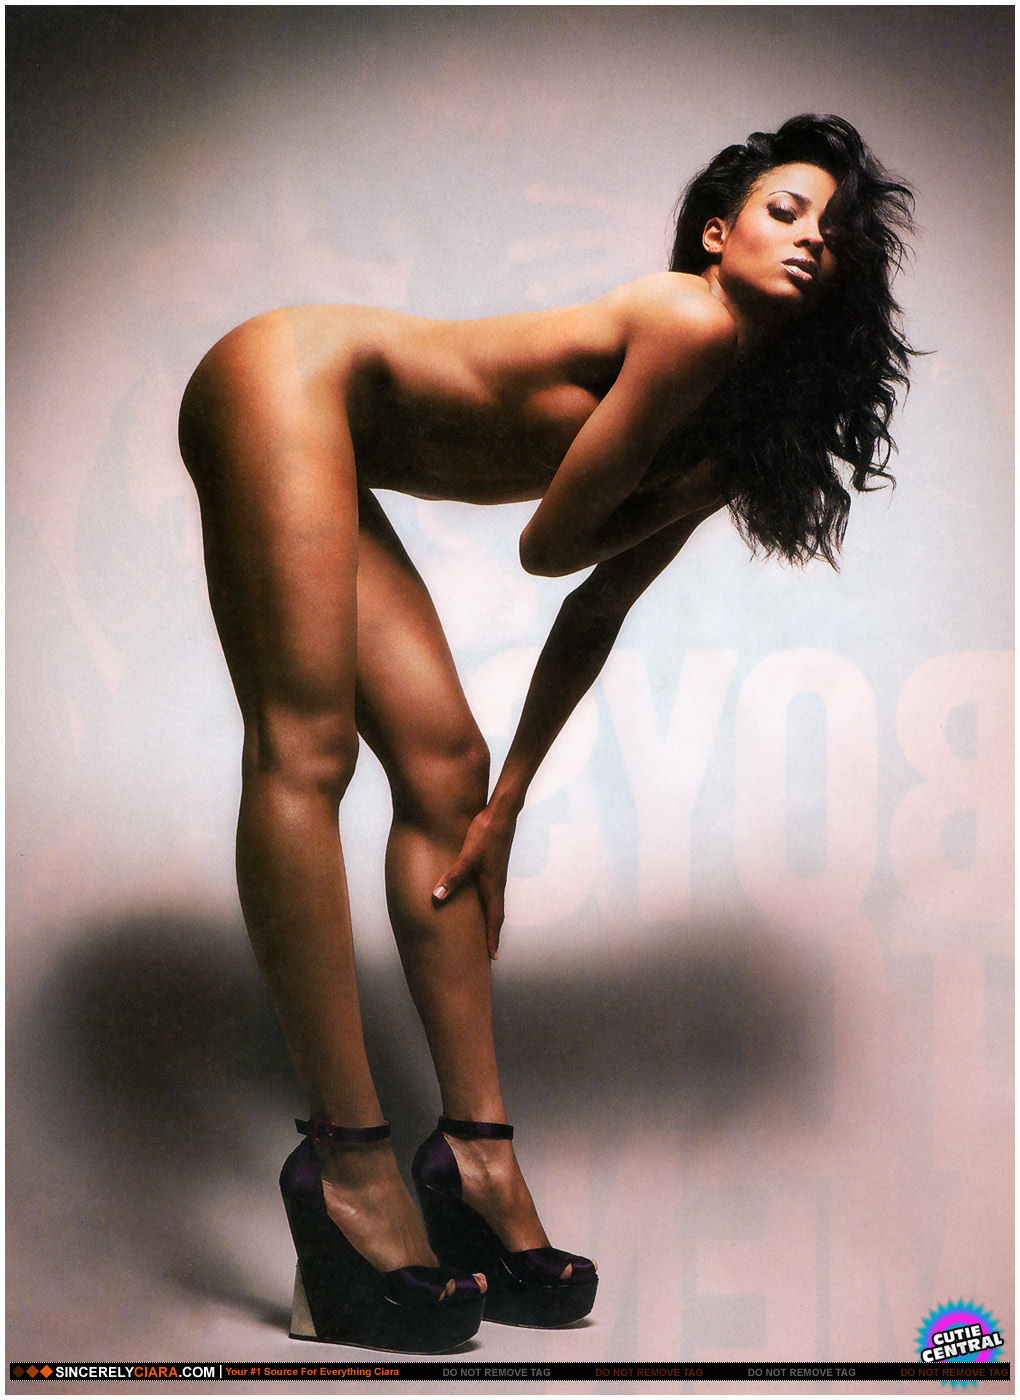 Your place Ciara nude are